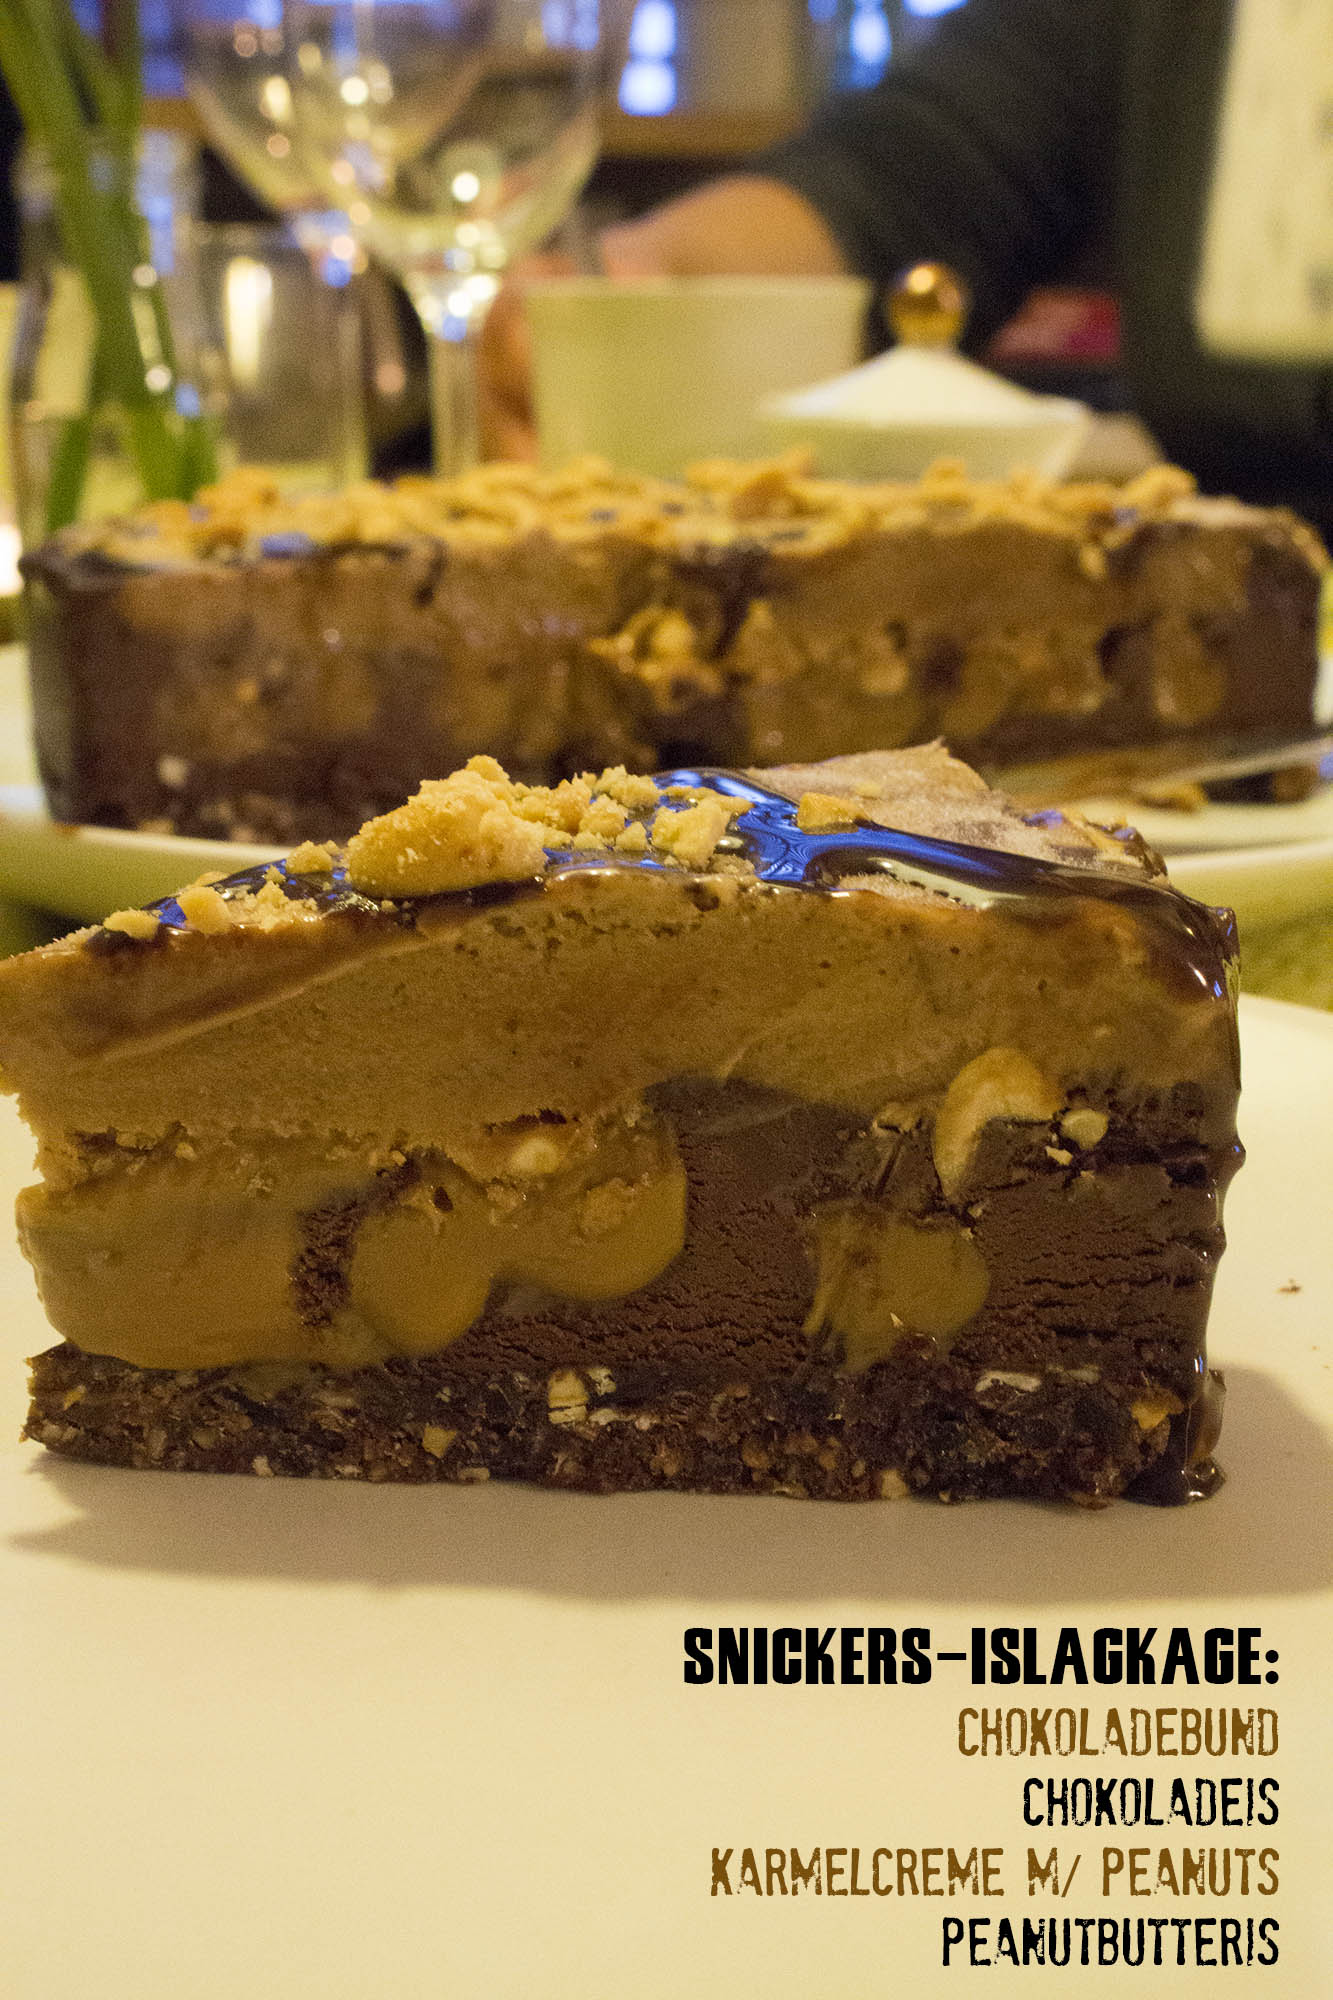 Snickers-islagkage